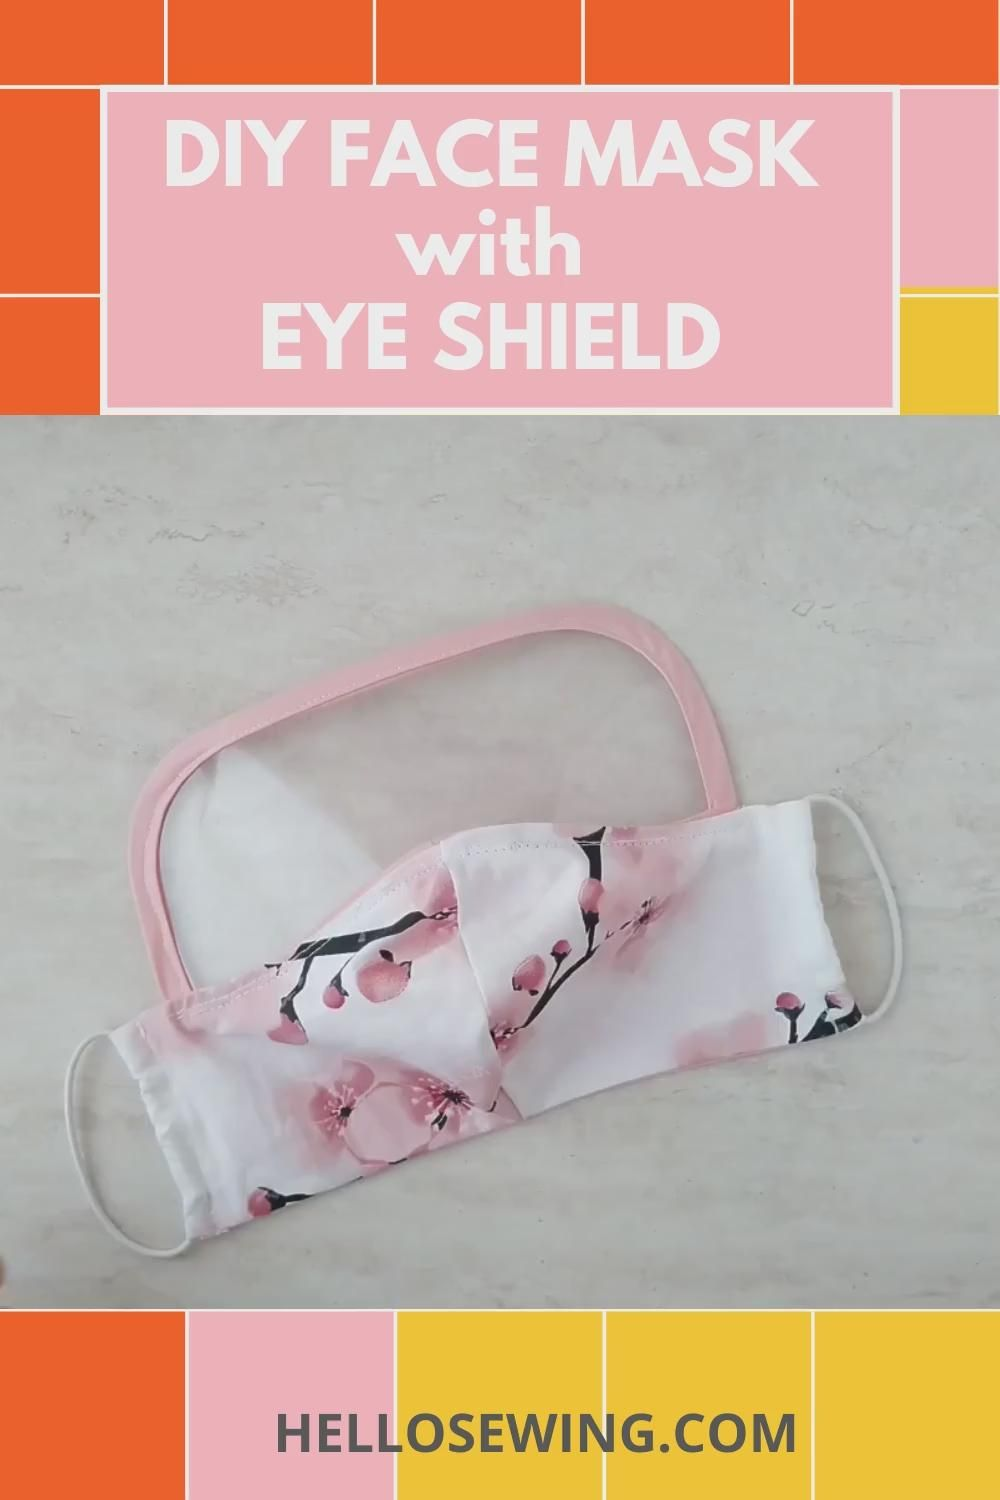 Diy Face Mask With Eye Shield Level Up Your Protection Now Video In 2020 Diy Face Mask Diy Face Mask